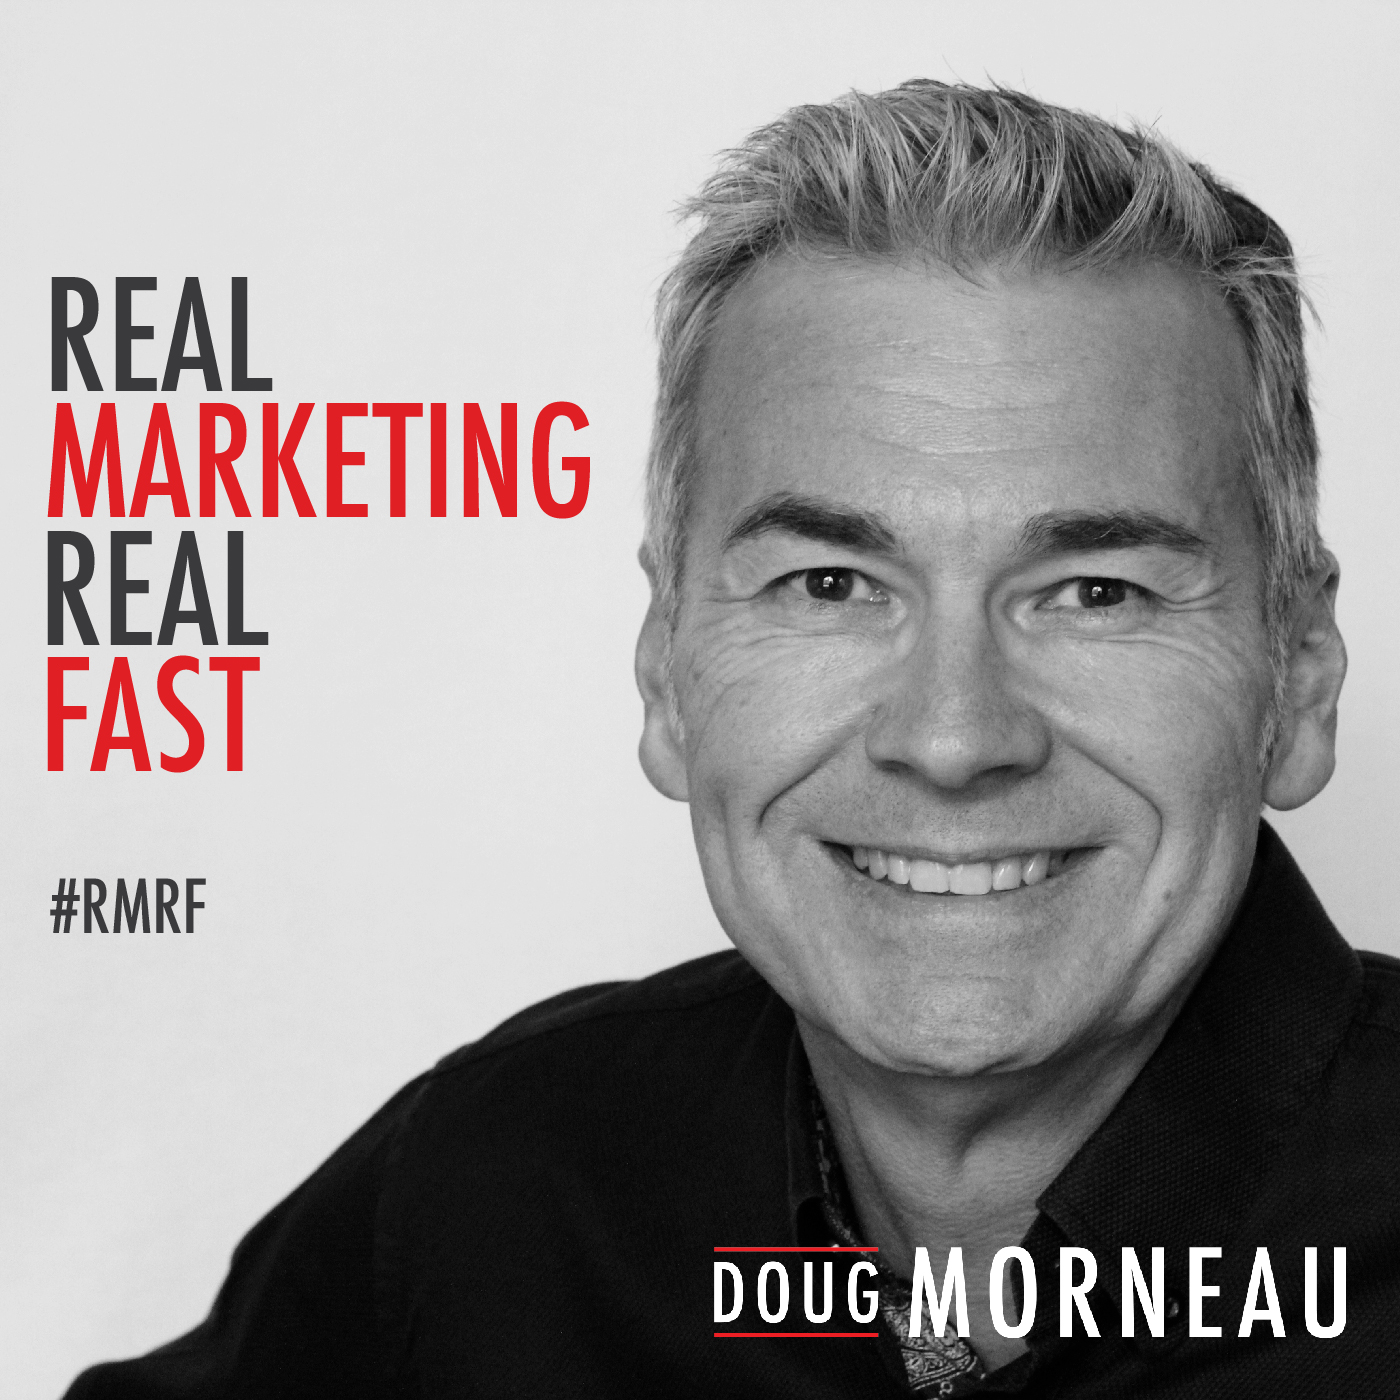 Doug Morneau - Real Marketing Real Fast